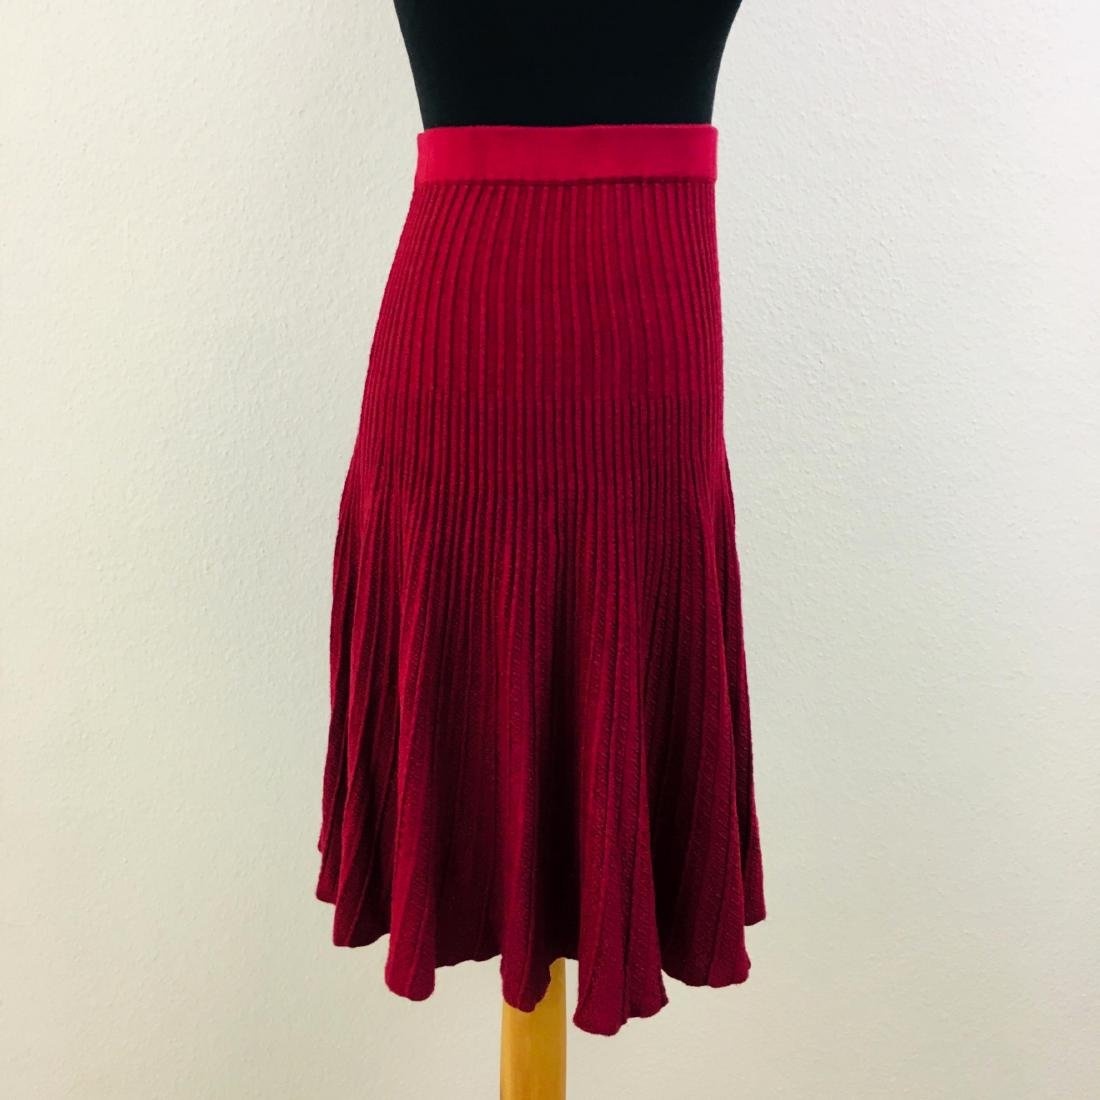 Vintage Women's Pleated Red Skirt - 3